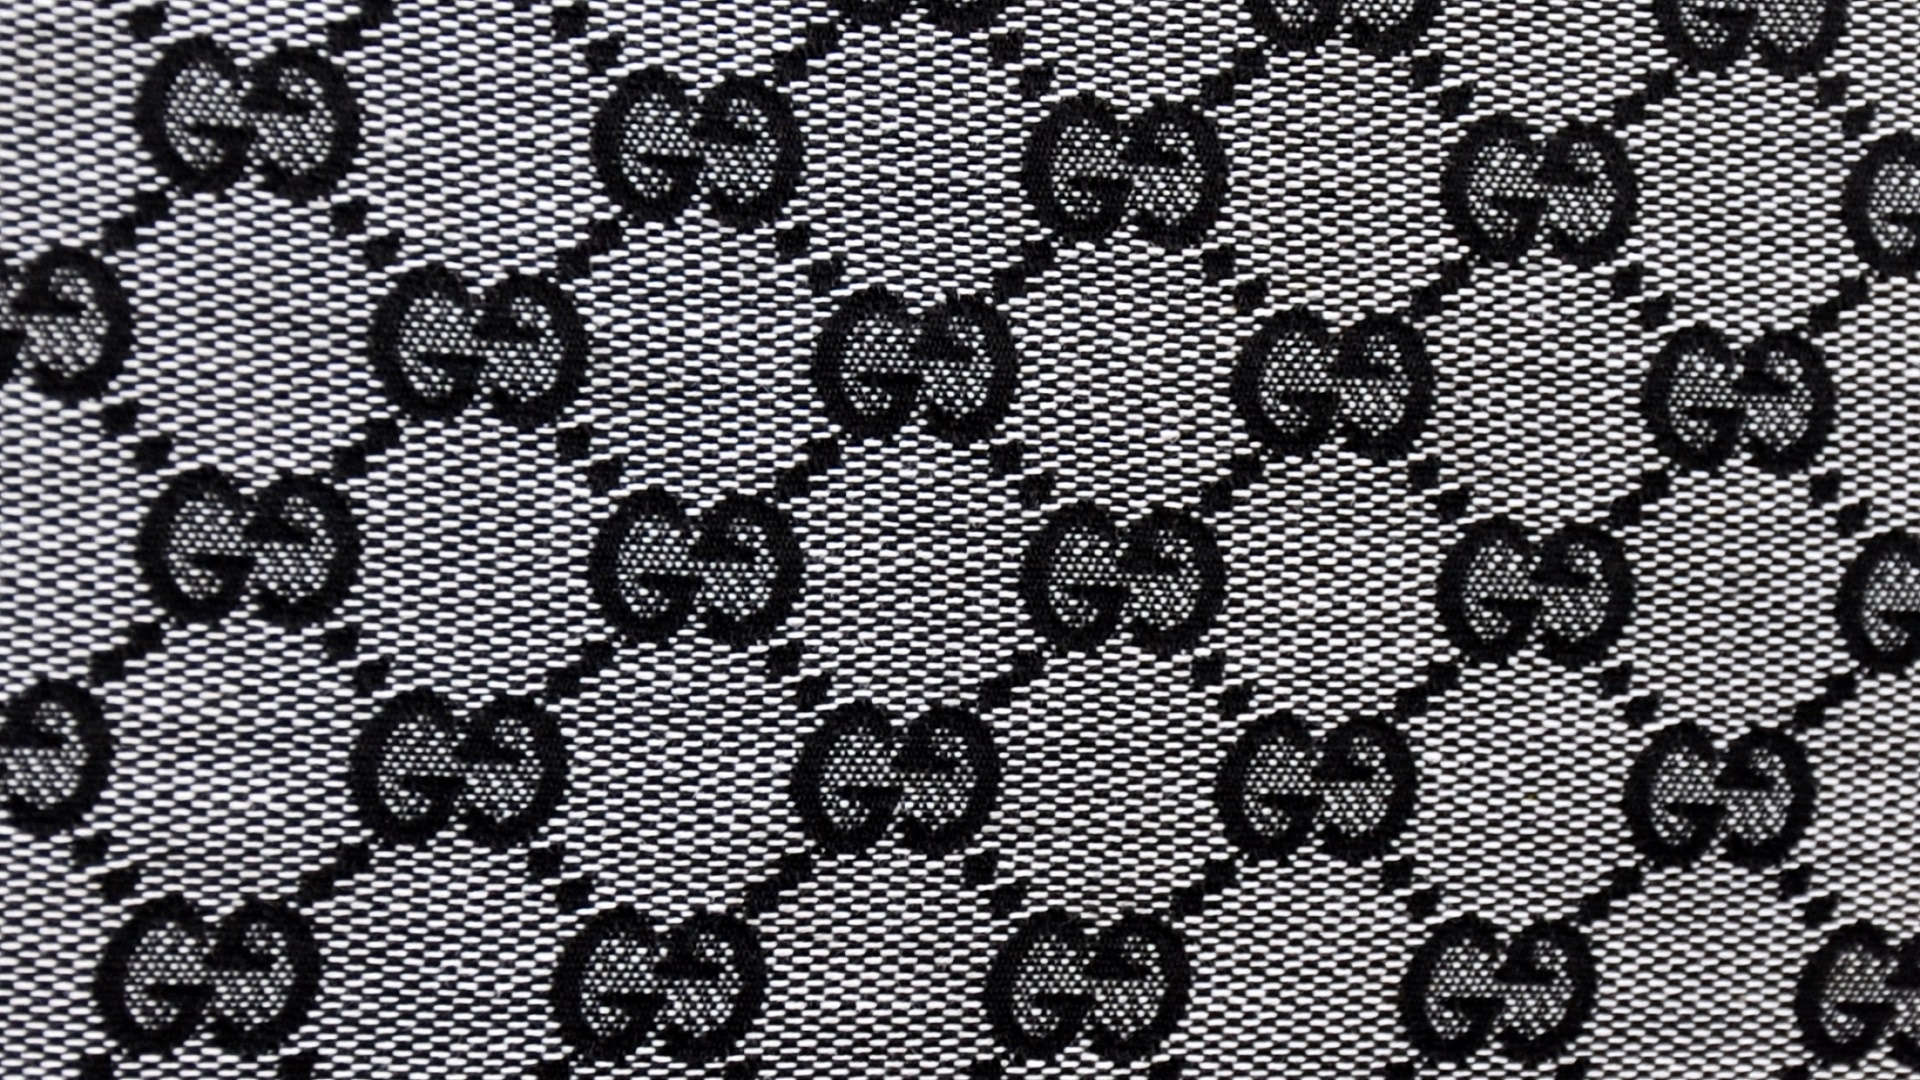 Floral Print Iphone Wallpaper Gucci Wallpapers Hd Pixelstalk Net